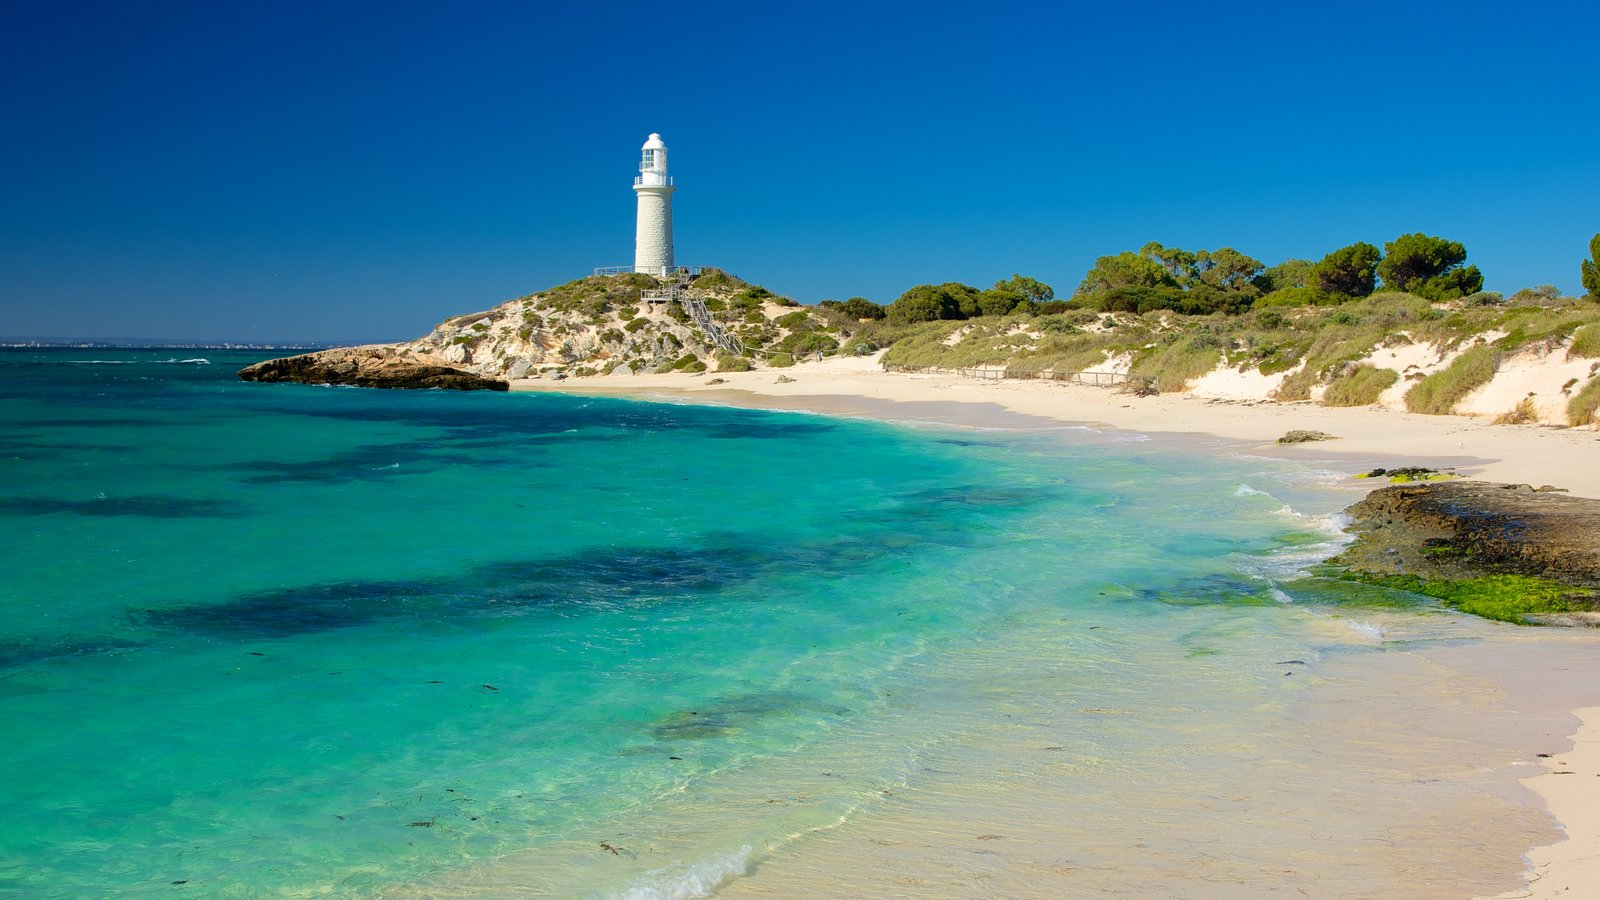 Rottnest Island showing a coastal town, a sandy beach and landscape views